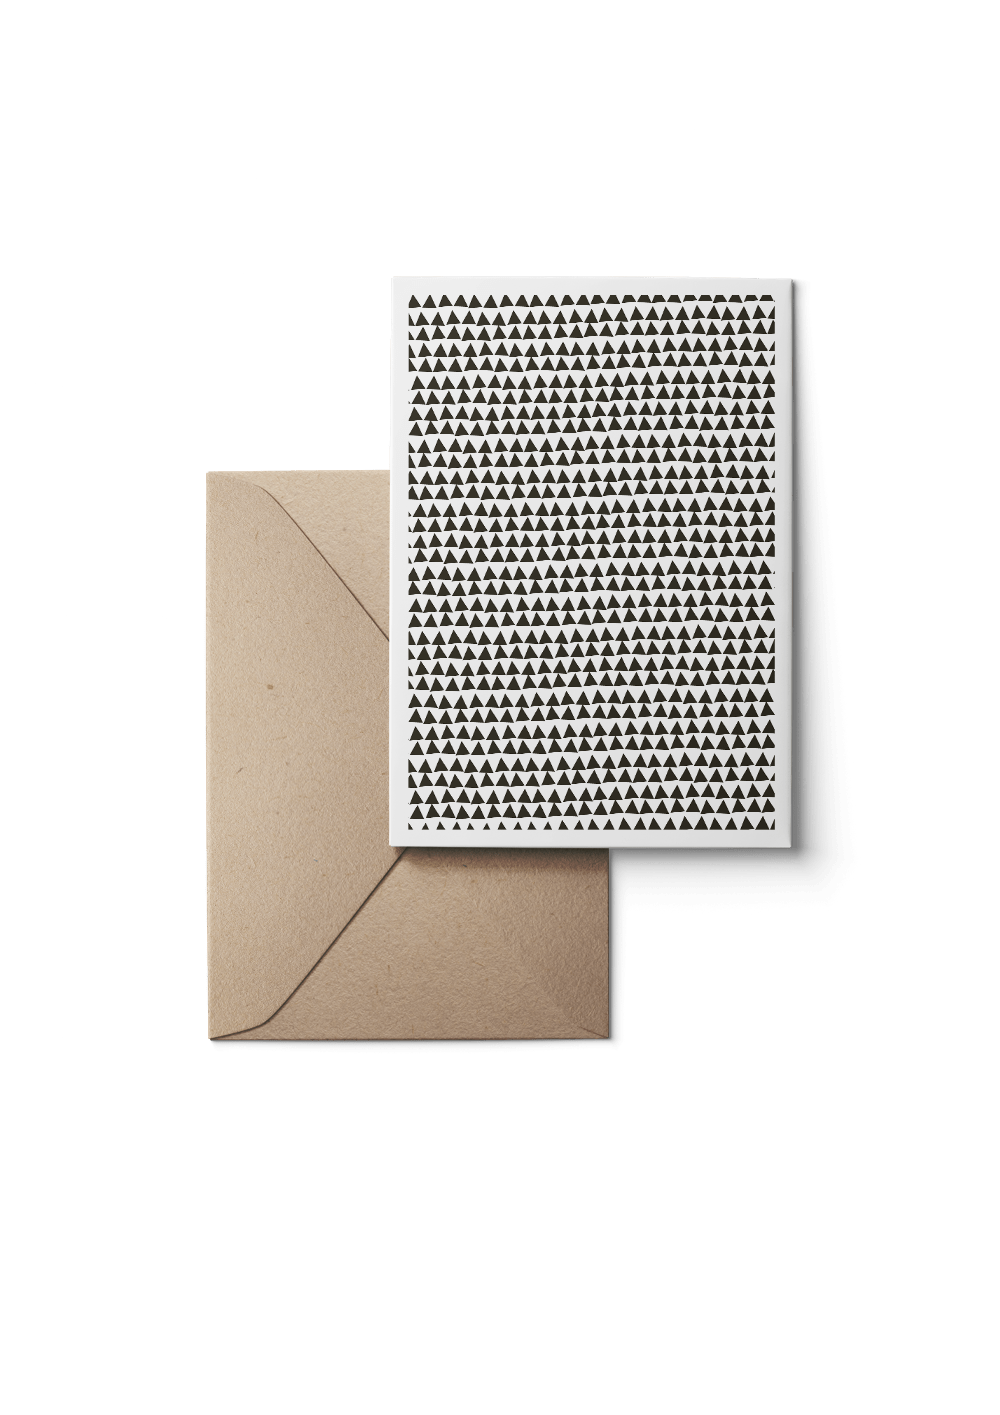 Shaking Through, B Eco, Grußkarte, 6 Karten Set by Karten Design Fabrik. Supplier of designer Greeting Cards, Gift Wrap, Christmas Cards & Invitations to leading design stores including Connox, Modulor, Magazin & Manufactum.